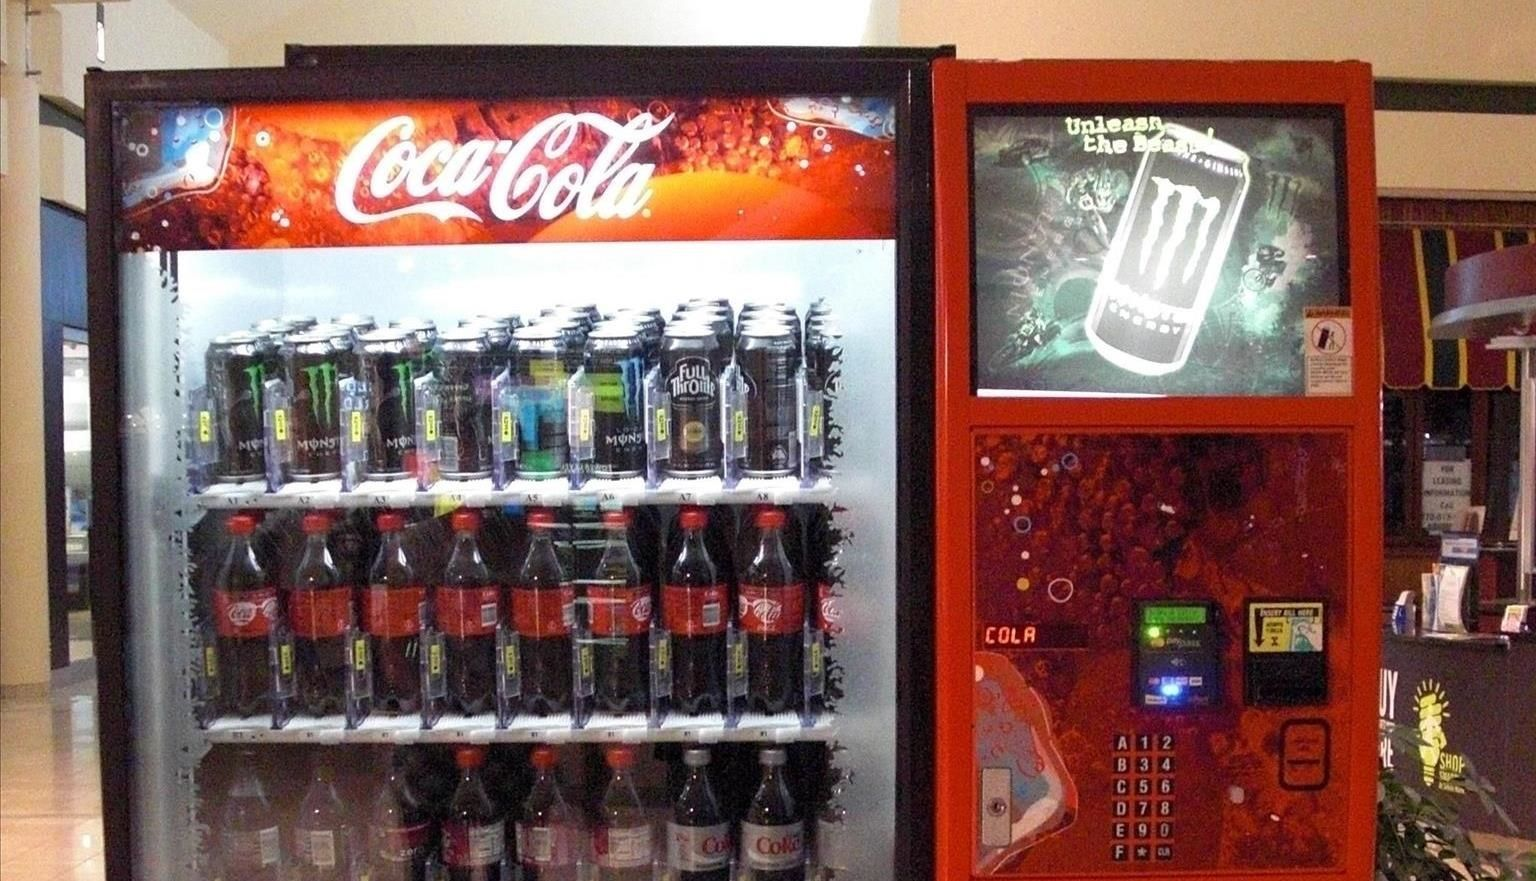 How To Get All The Money From A Vending Machine